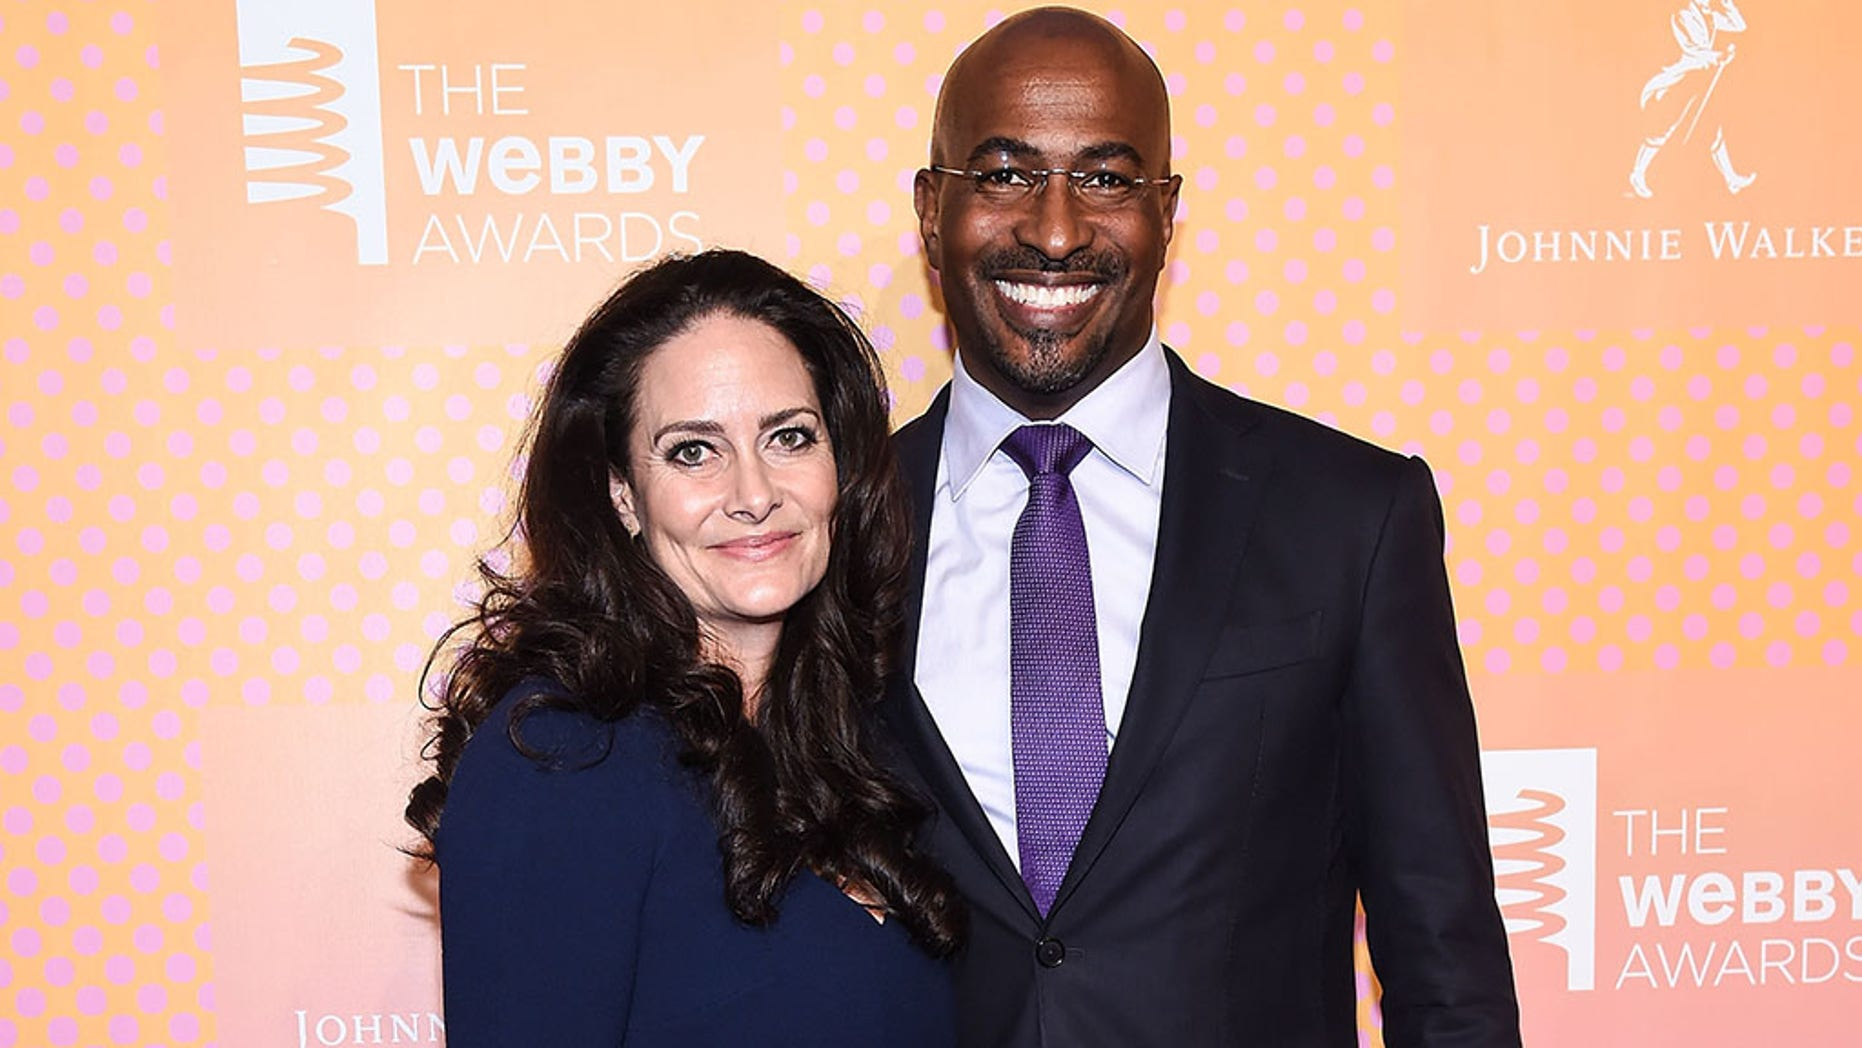 CNN's political commentator, Van Jones, and his wife.